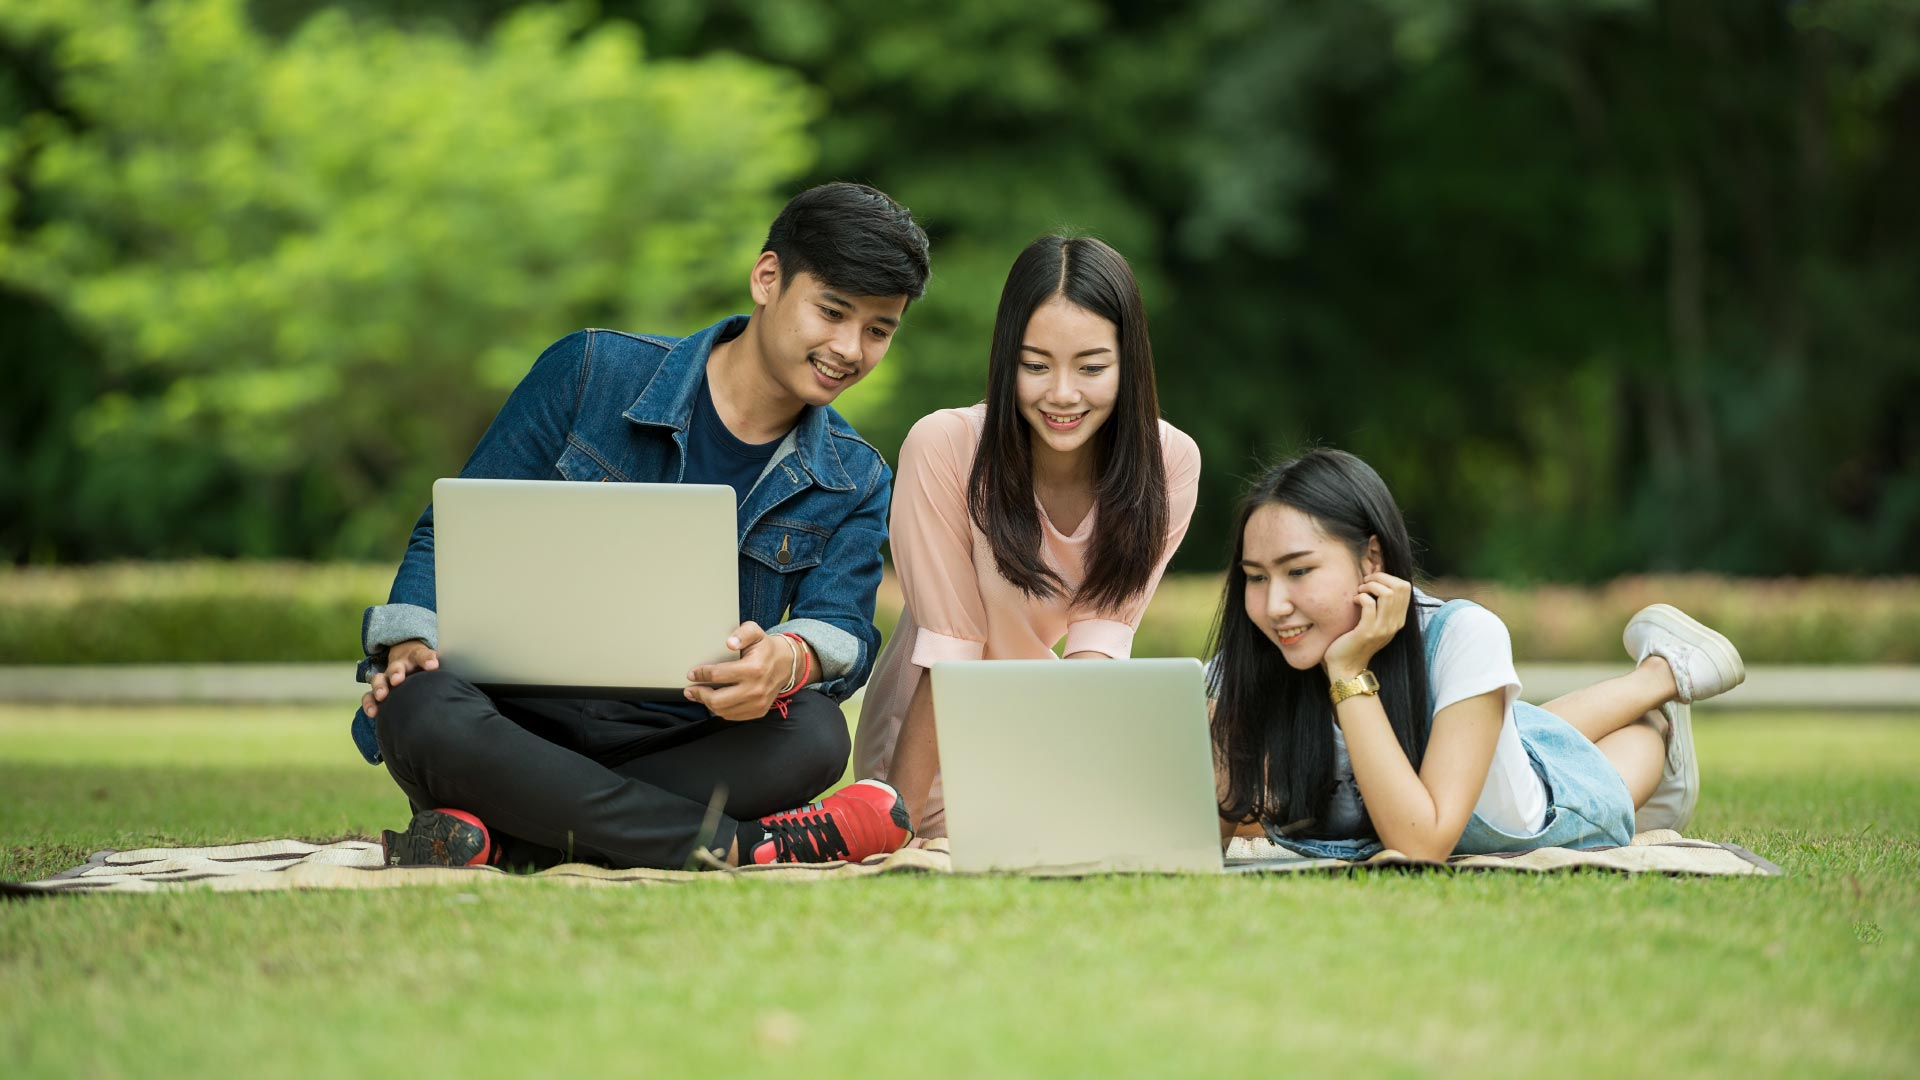 Three teenagers in park on laptops